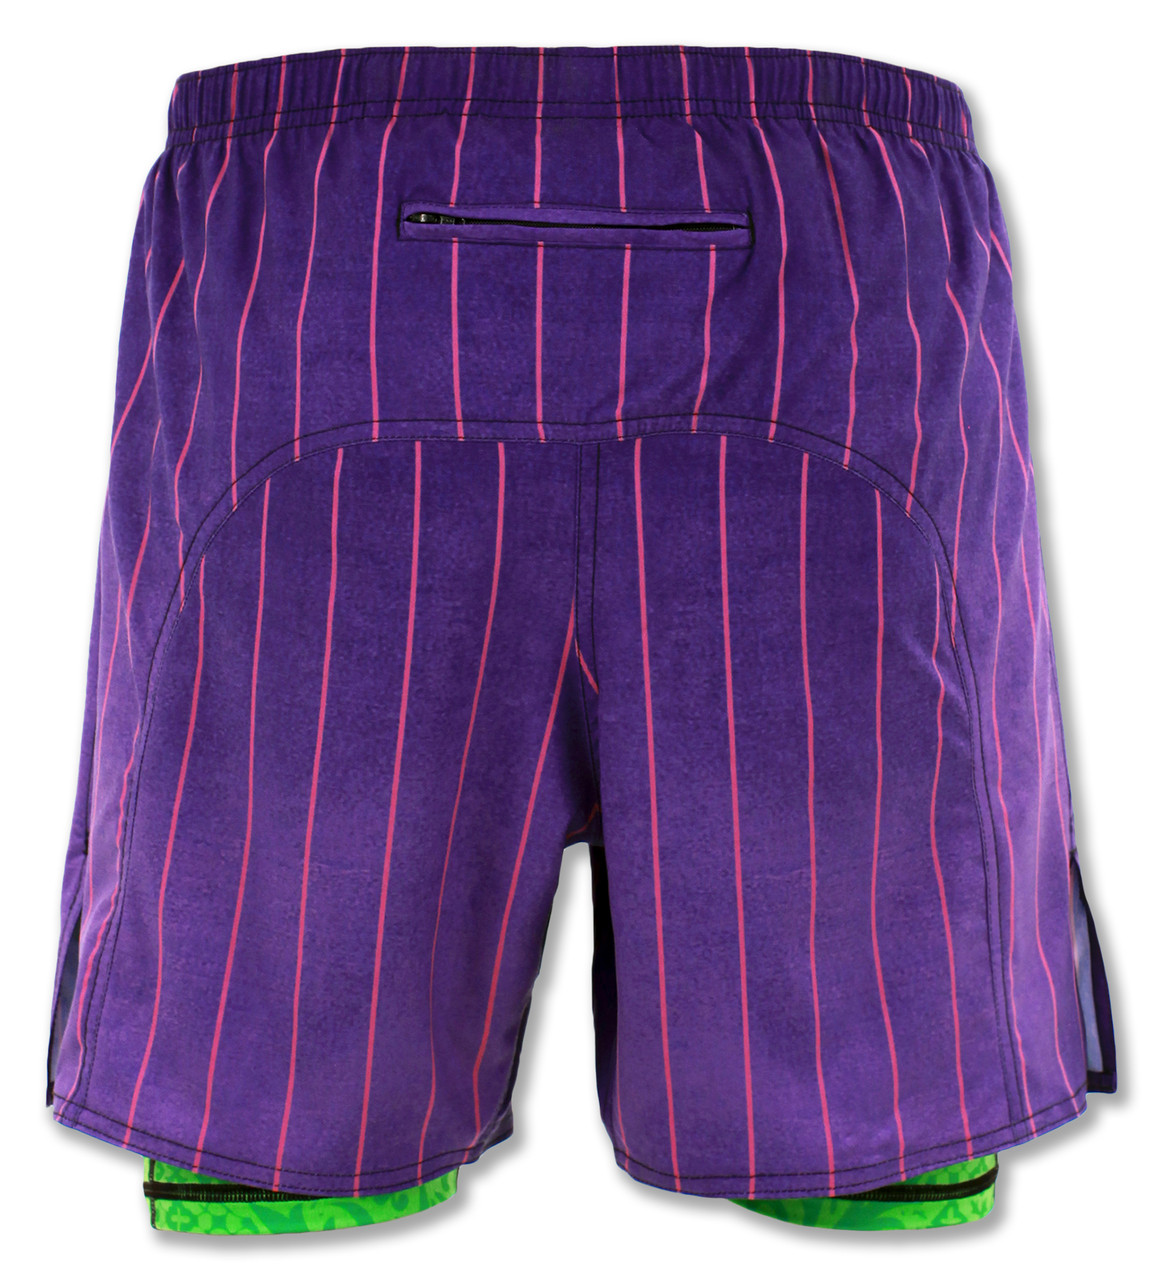 INKnBURN Men's Purple Pinstripe Shorts Back Showing Zippered Pocket